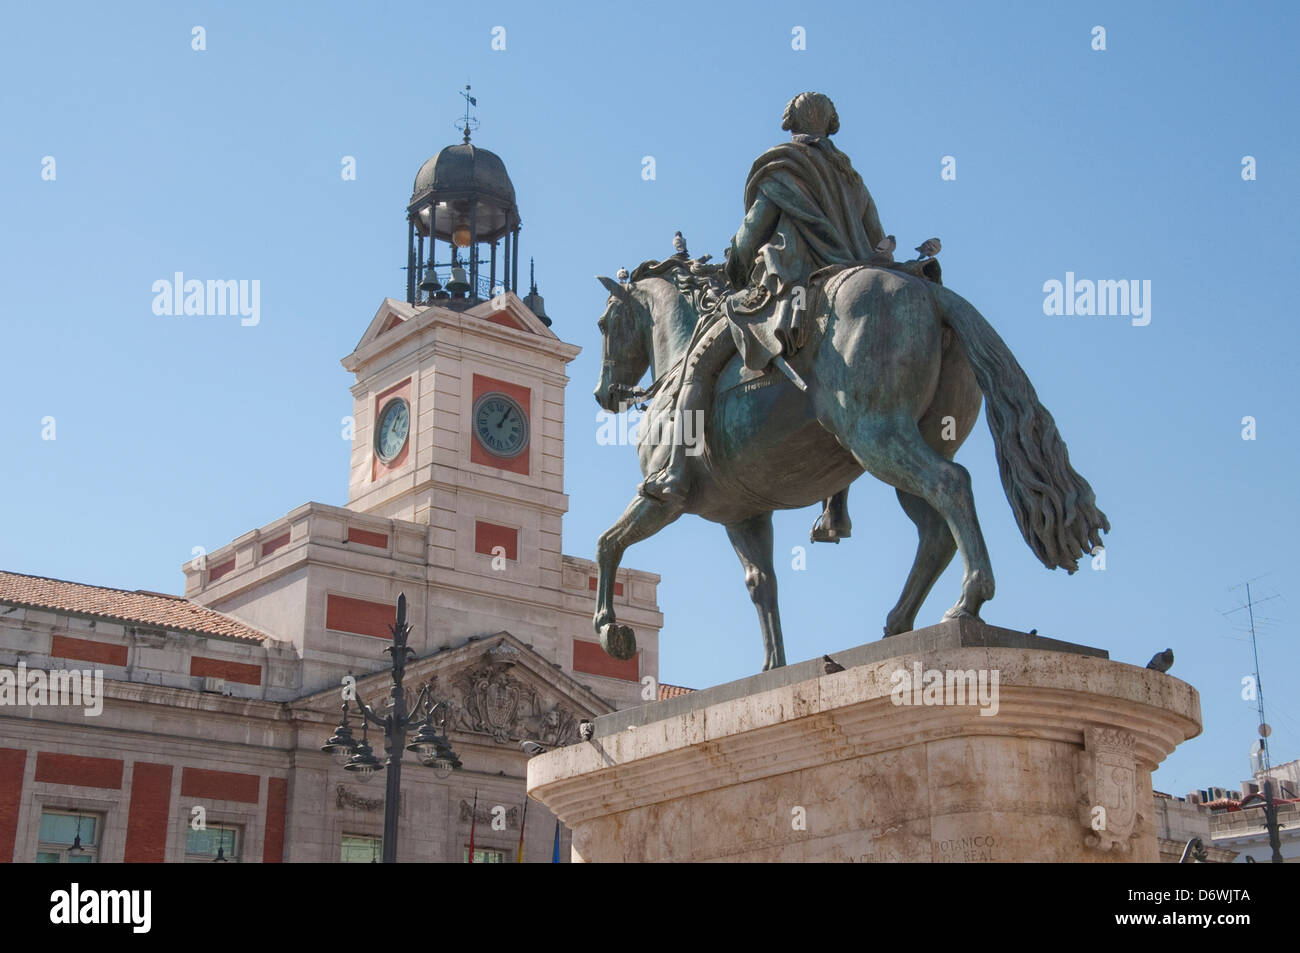 Spain, Madrid, Low angle view of statue of mounted King Charles III in Puerto del Sol plaza Stock Photo